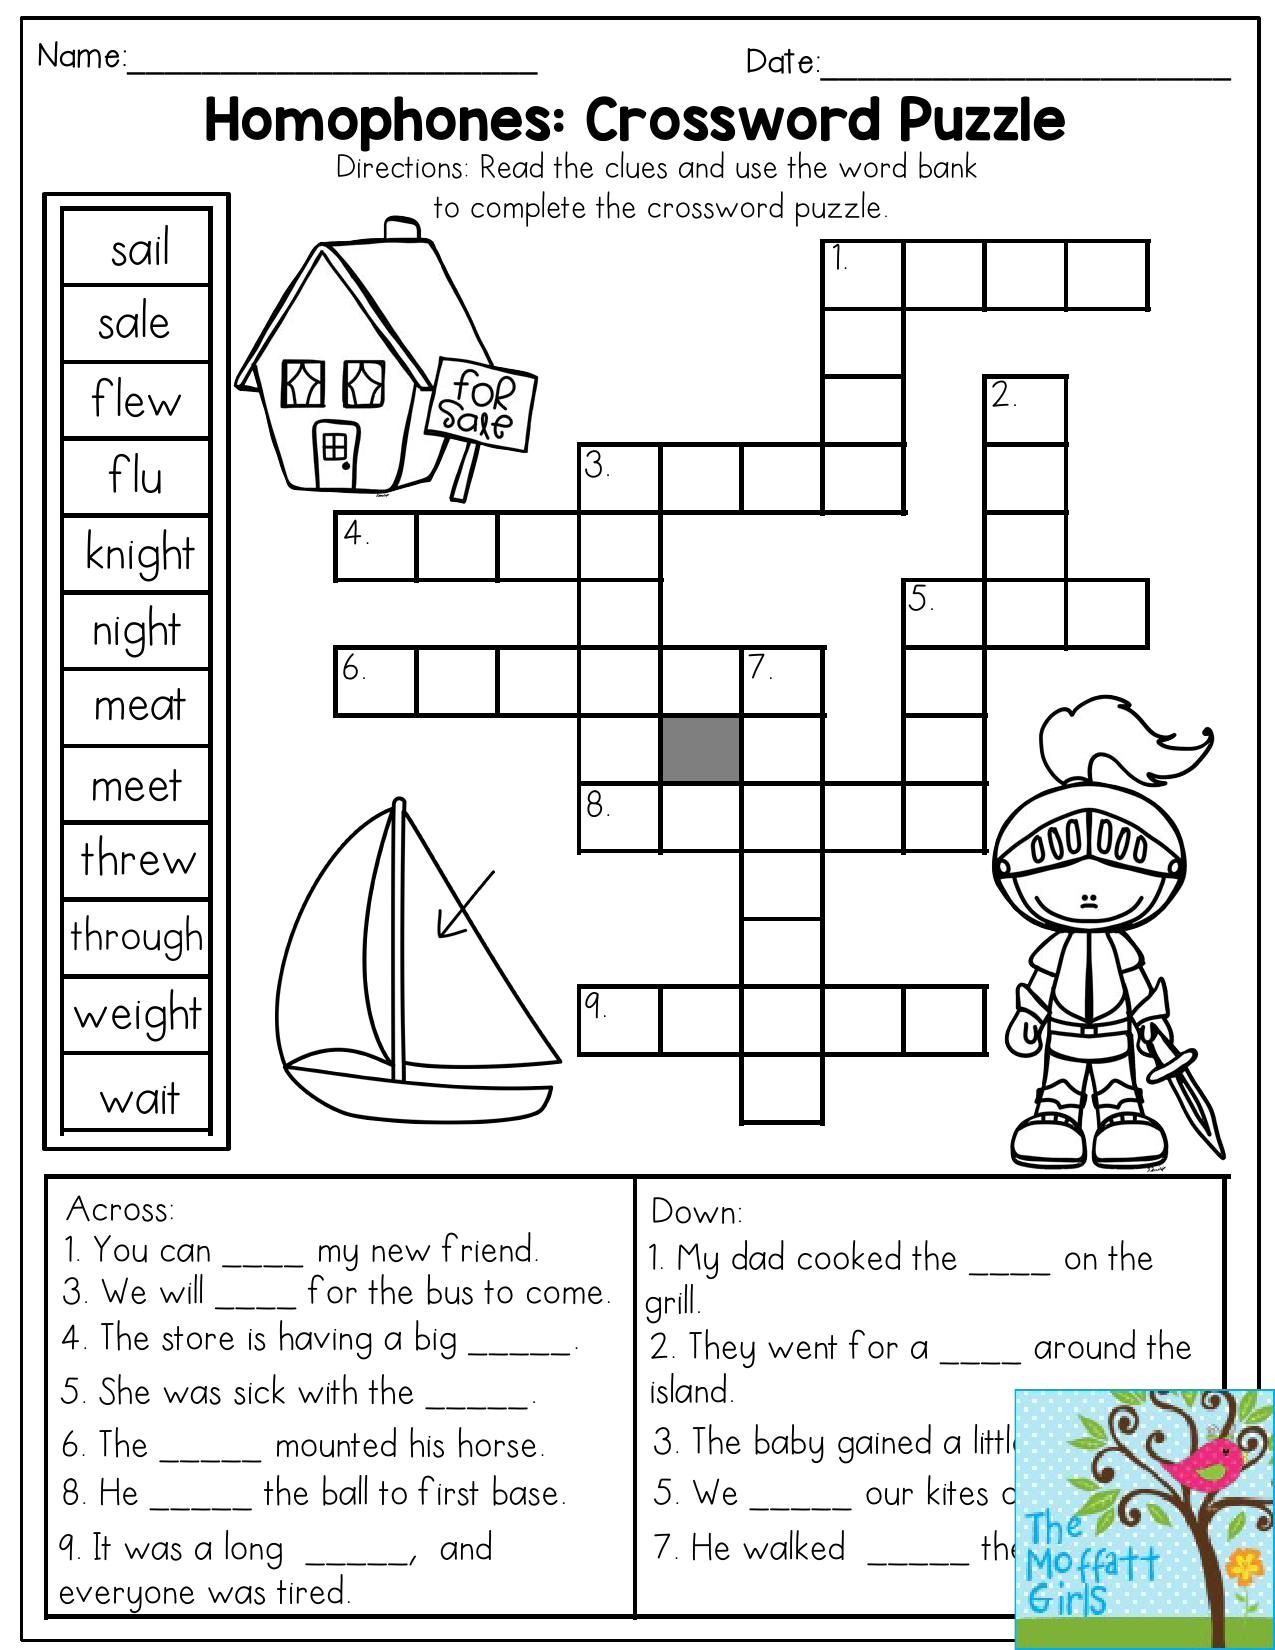 Homophones: Crossword Puzzle- Read The Clues And Use The Word Bank - 4Th Grade Printable Crossword Puzzles